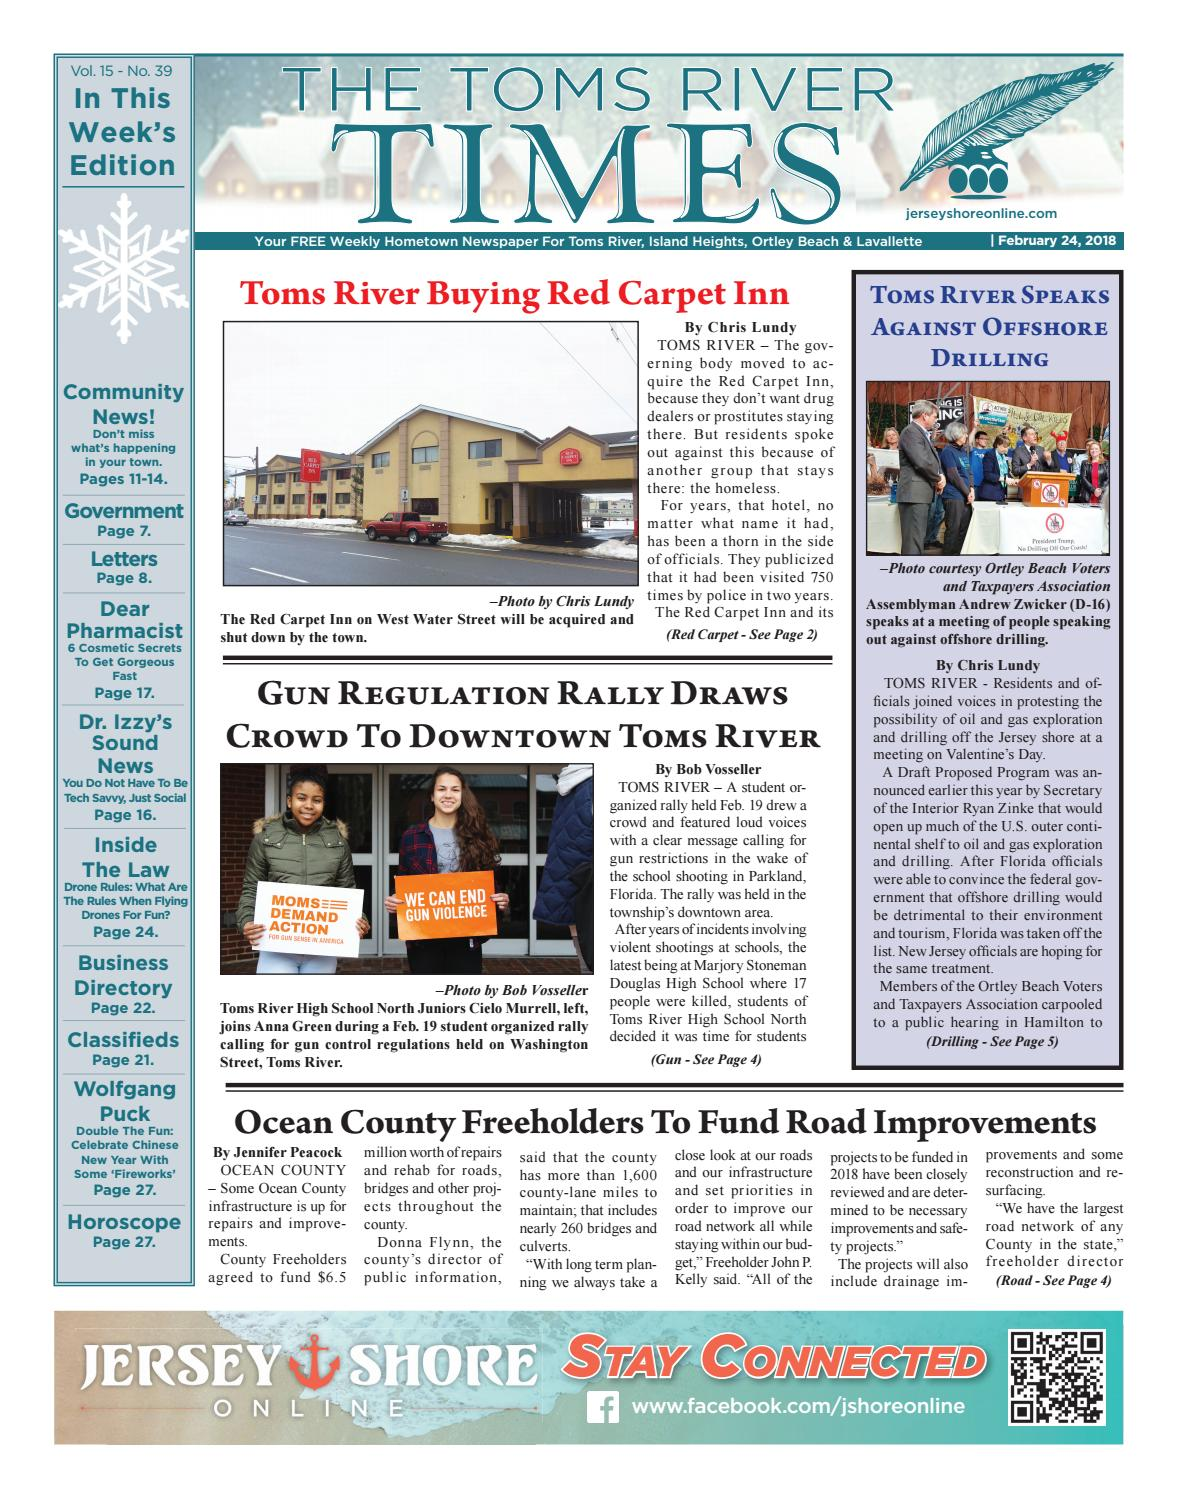 8386d71738c 2018-02-24 - The Toms River Times by Micromedia Publications/Jersey ...